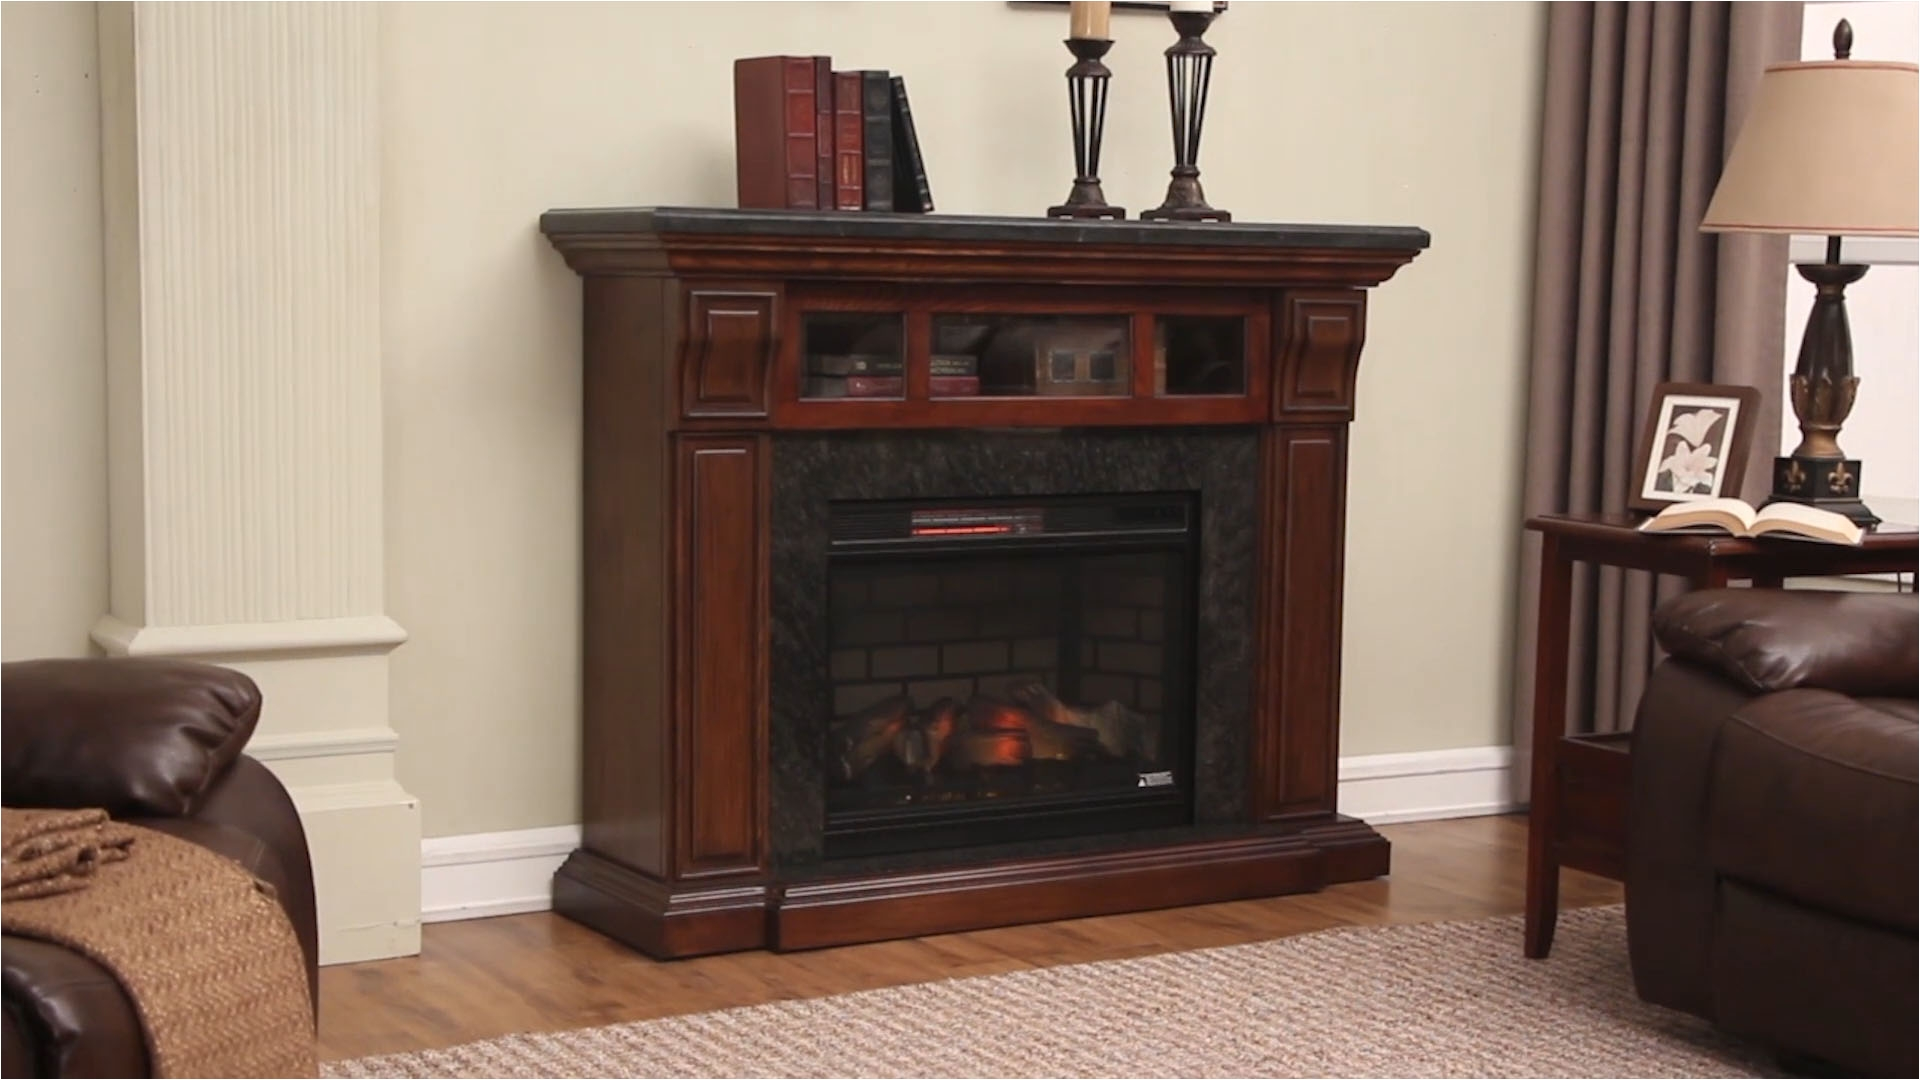 menards electric fireplaces sale bedroom queen sleigh bed for elegant tufted bed design ideas of menards electric fireplaces sale